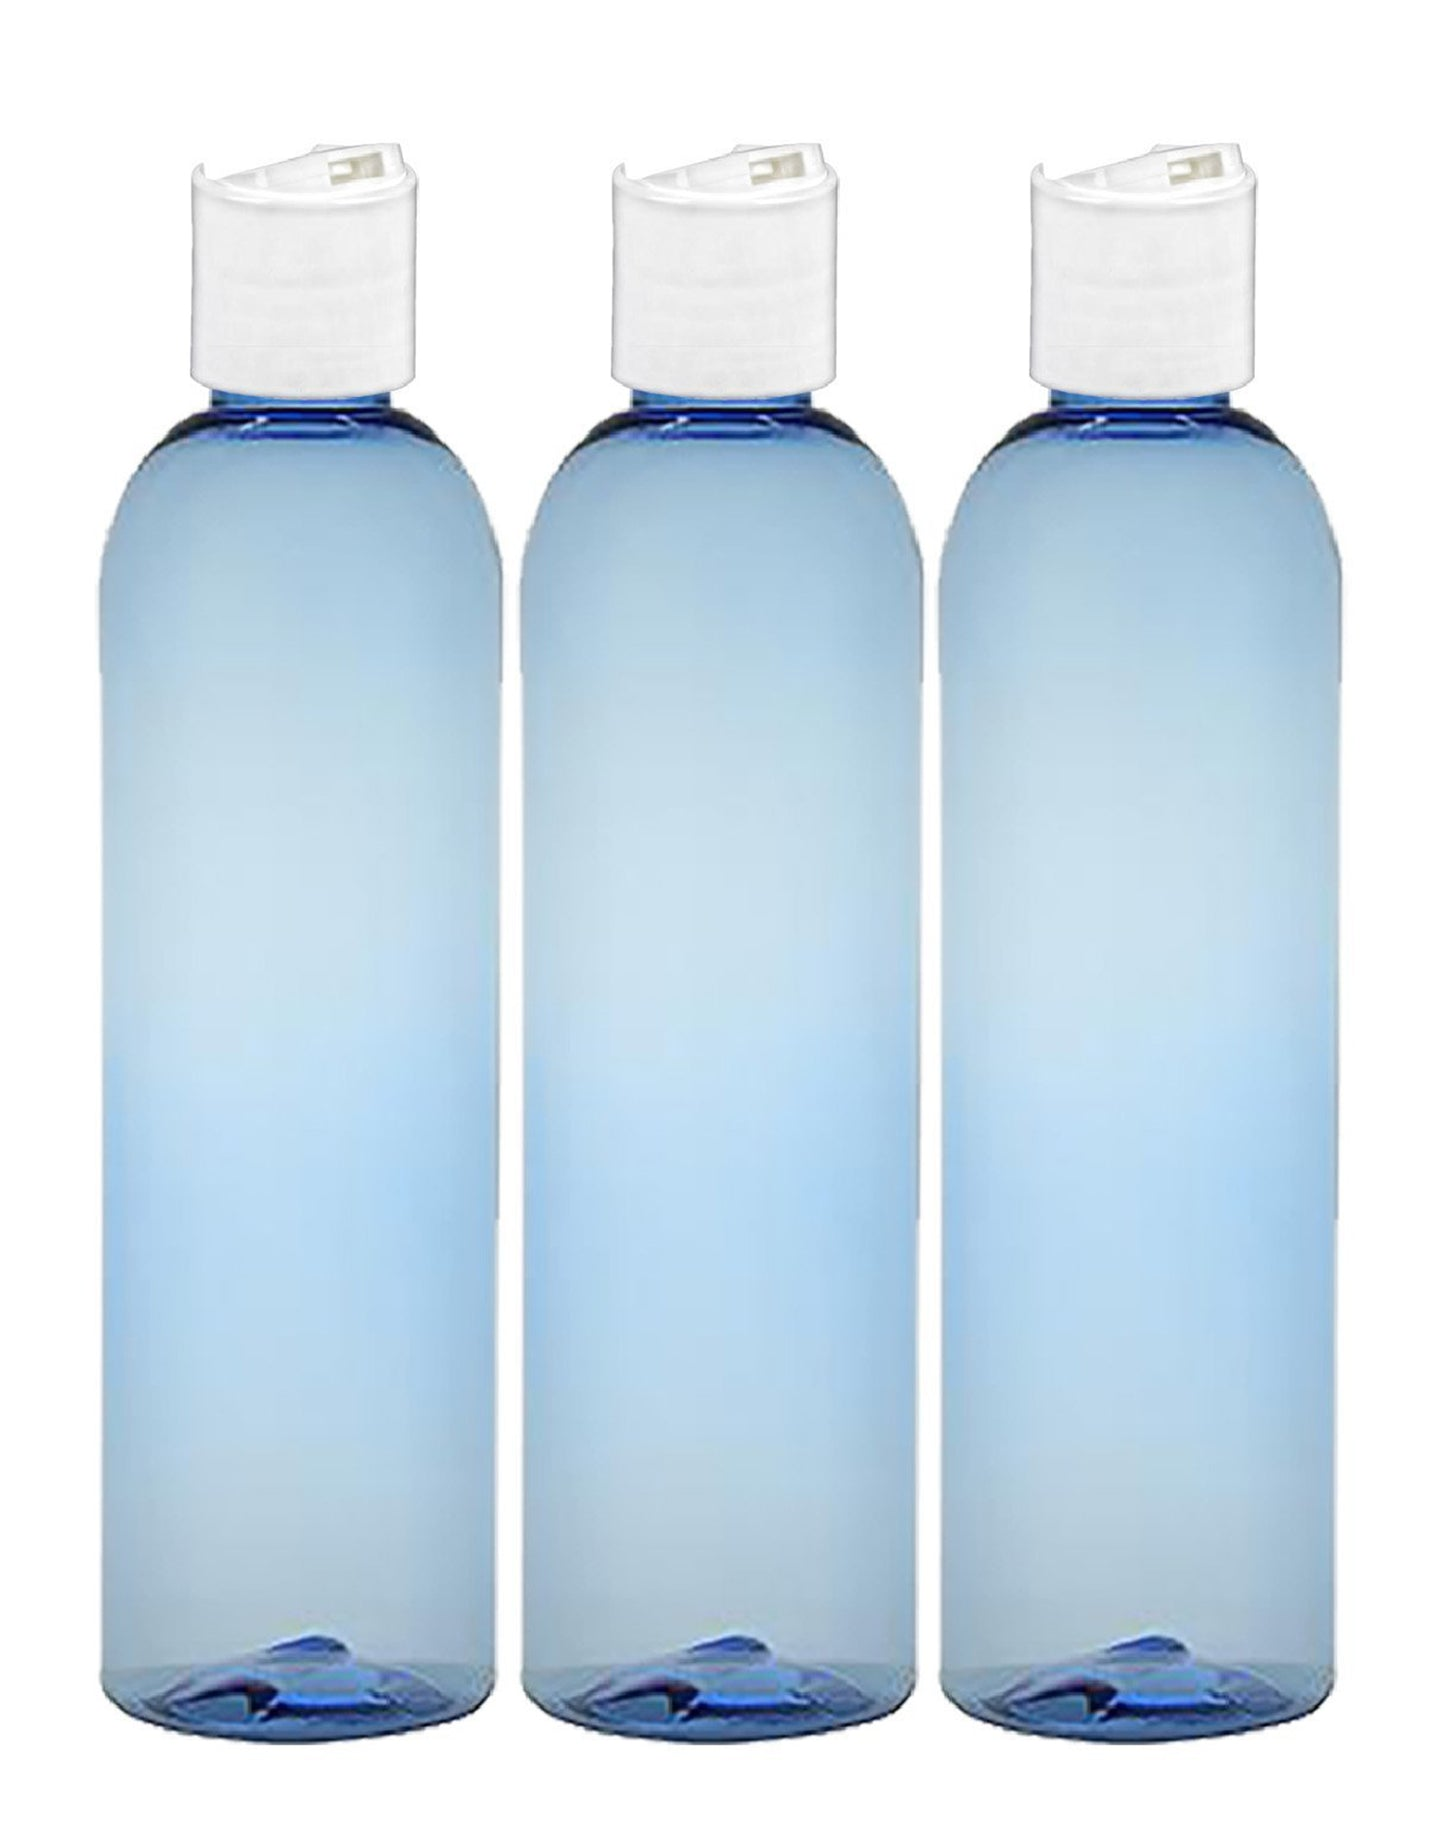 MoYo Natural Labs 8 oz Travel Bottles, Empty Travel Containers with Disc Caps, BPA Free PET Plastic Squeezable Toiletry/Cosmetic Bottles (Pack of 3, Light Blue)